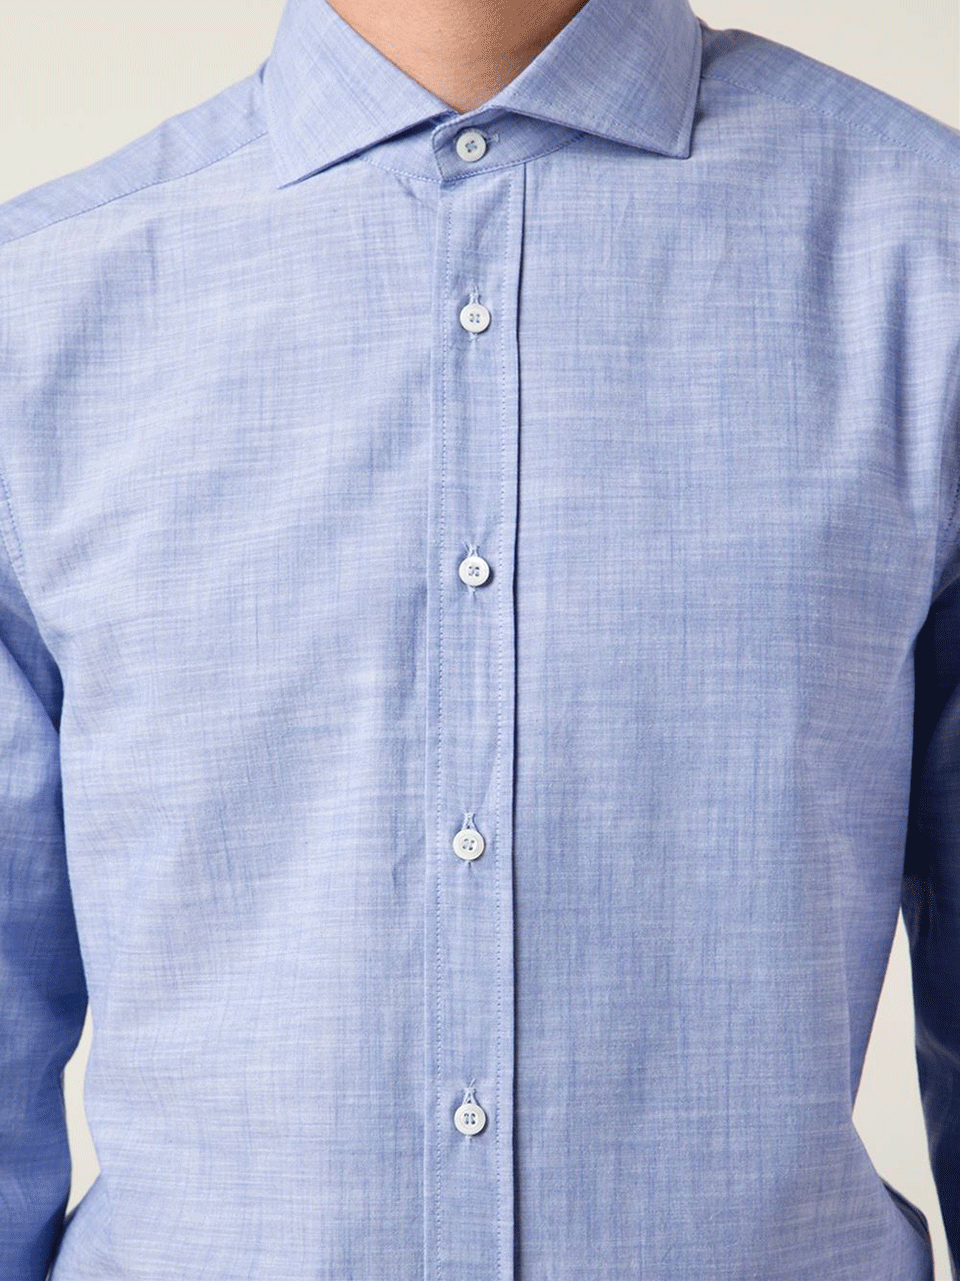 Brunello cucinelli spread collar oxford shirt in blue for for What is a spread collar shirt